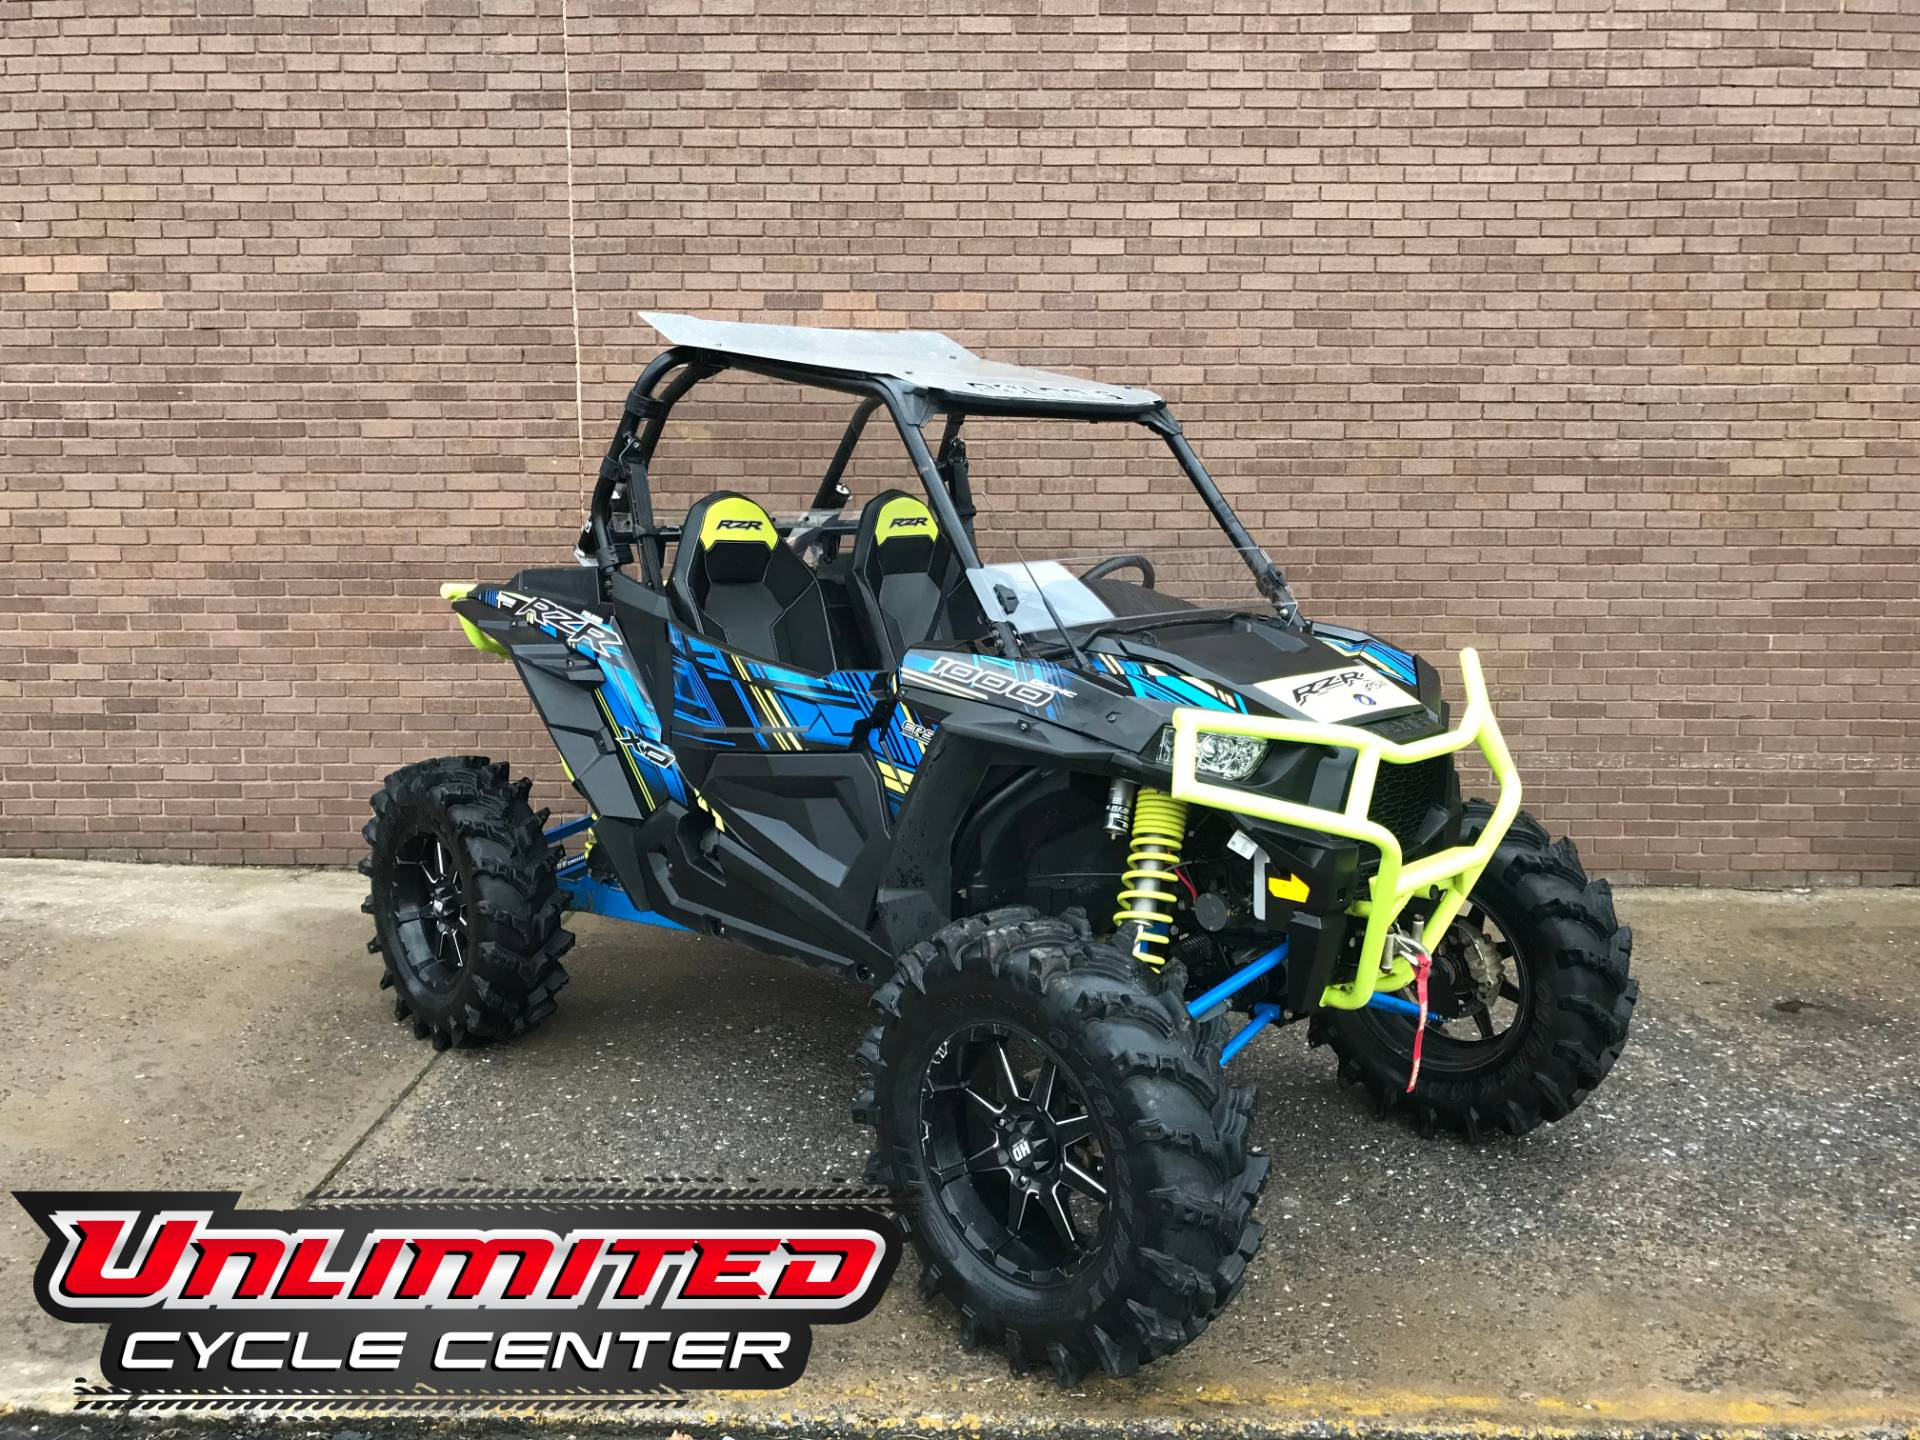 2017 Polaris Rzr Xp 1000 Eps Le In Tyrone Pennsylvania